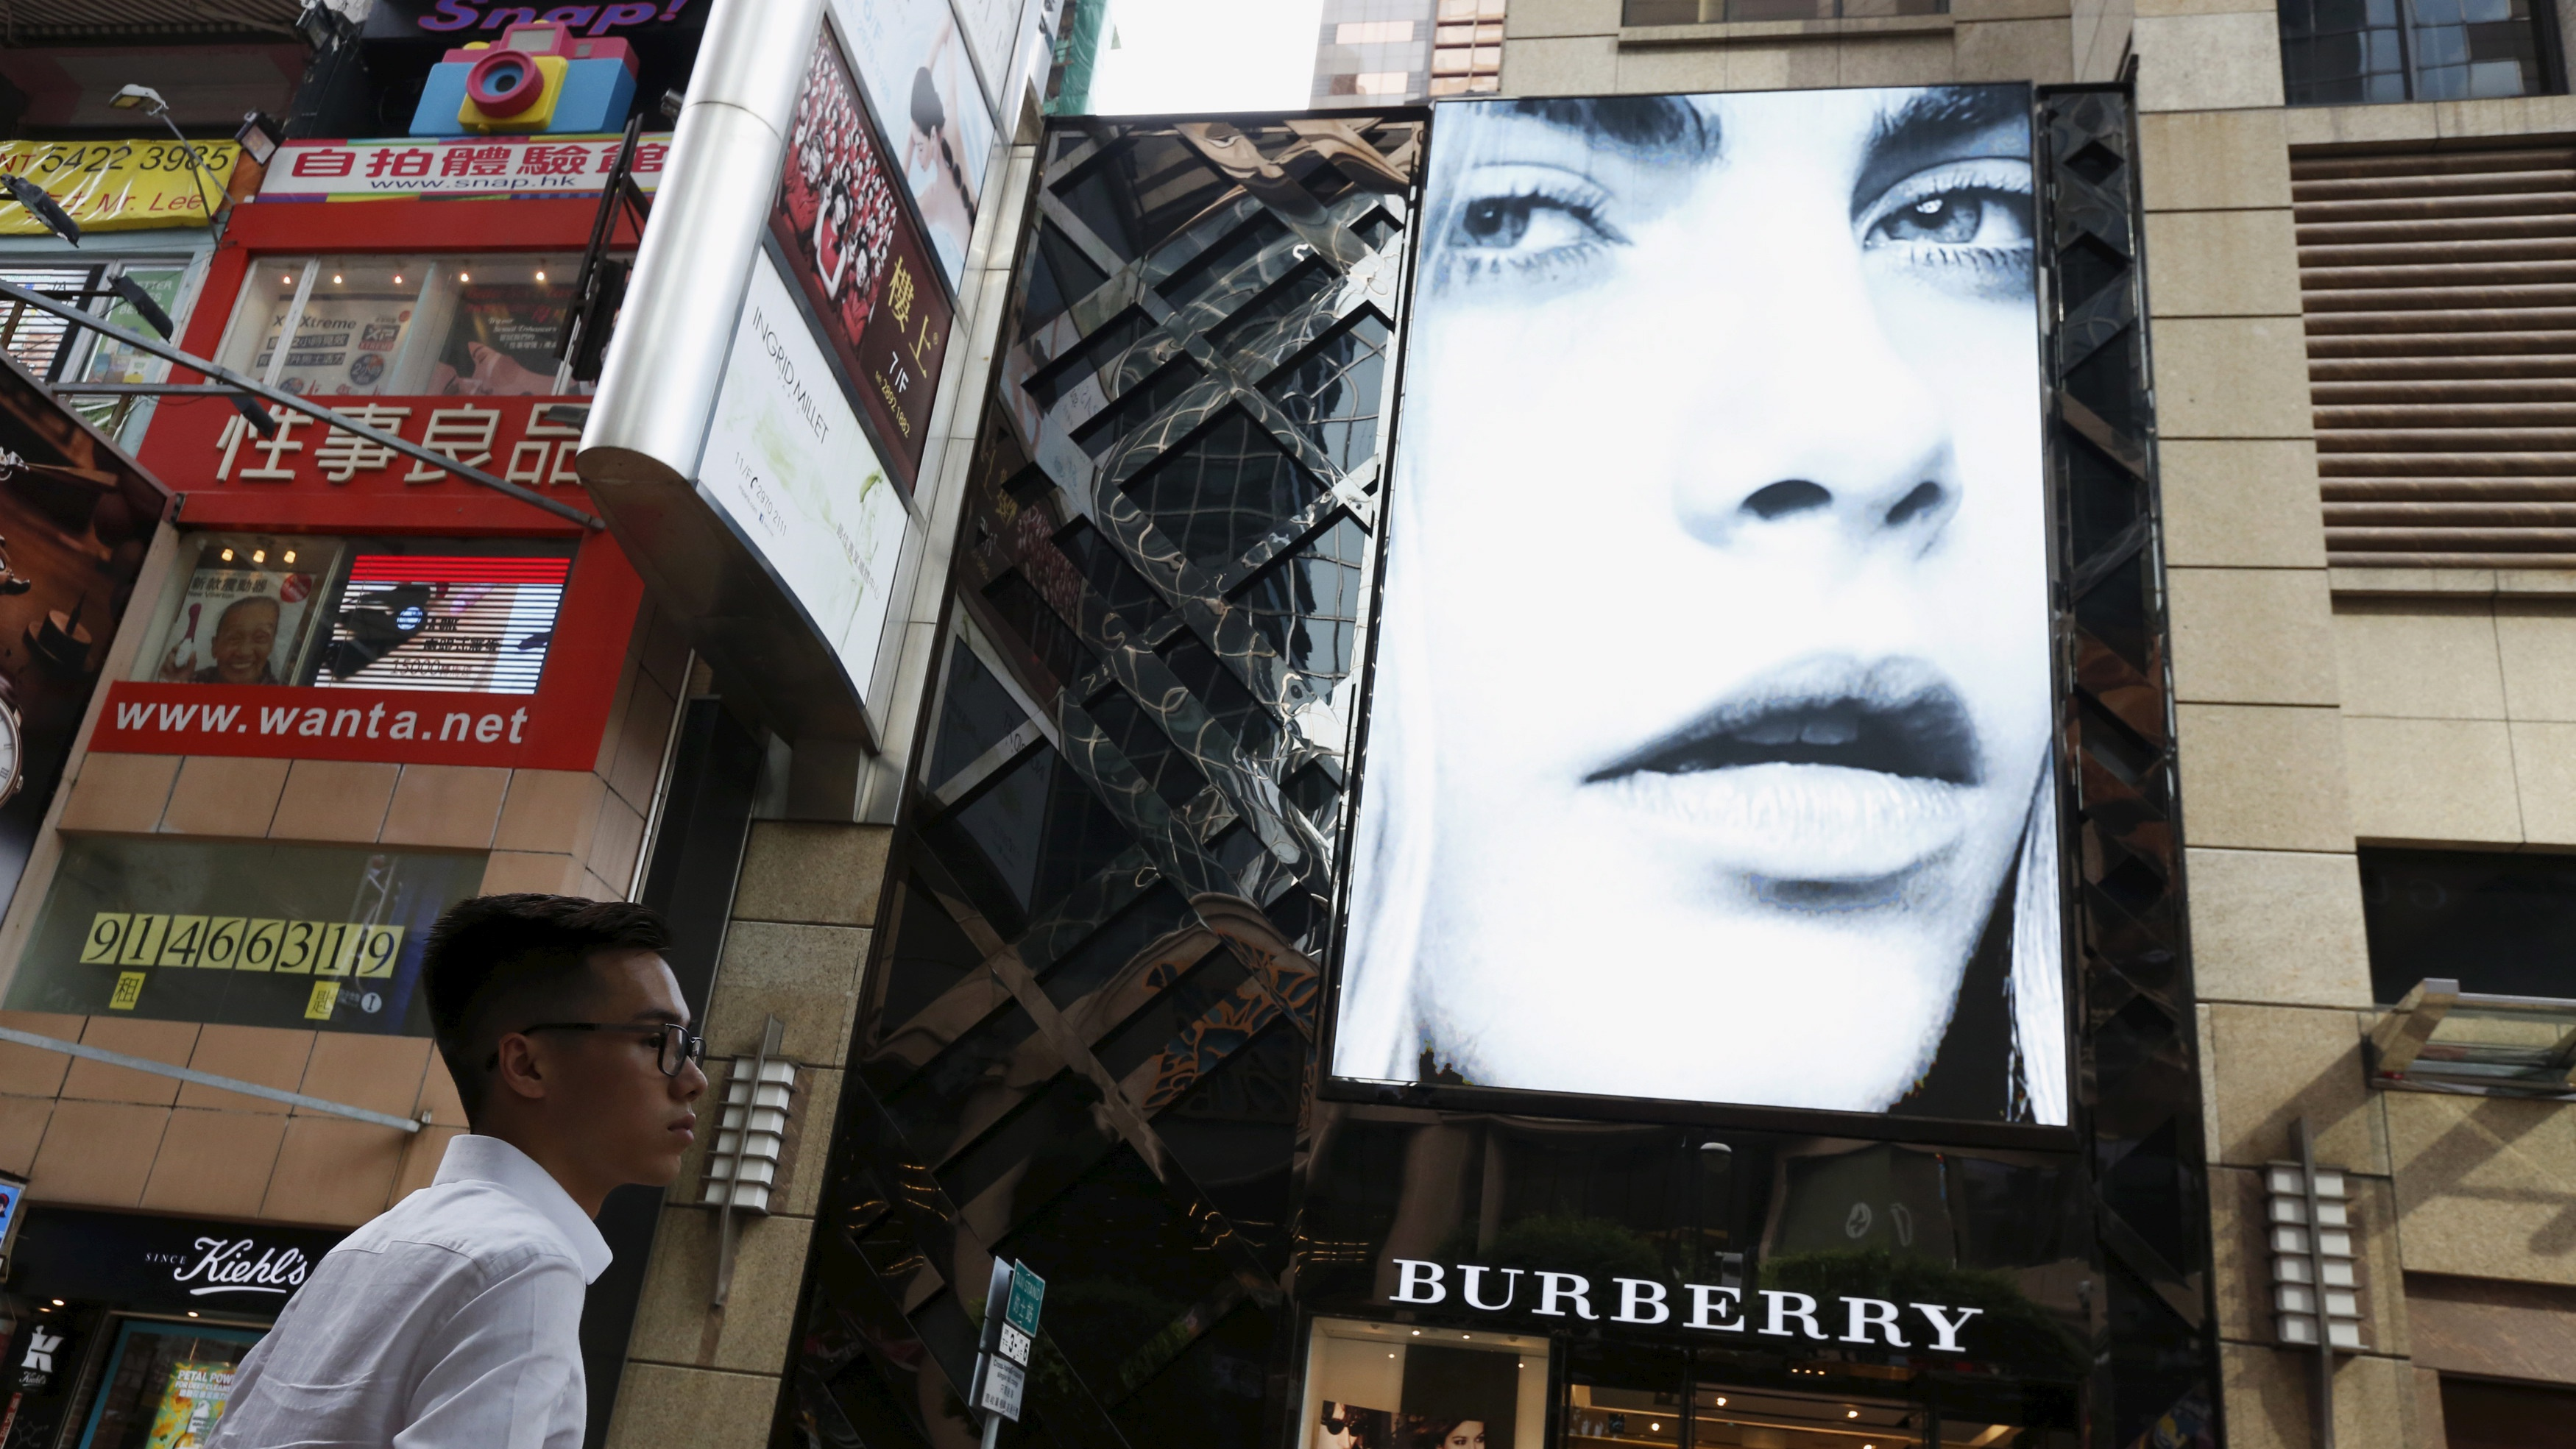 A model is seen on the screen of a Burberry store at Causeway Bay shopping district in Hong Kong, China, July 16, 2015. British luxury goods maker Burberry says its Hong Kong comparable store sales fell by a double-digit percentage in the quarter ending June 30, becoming the latest brand to show business is hurting.